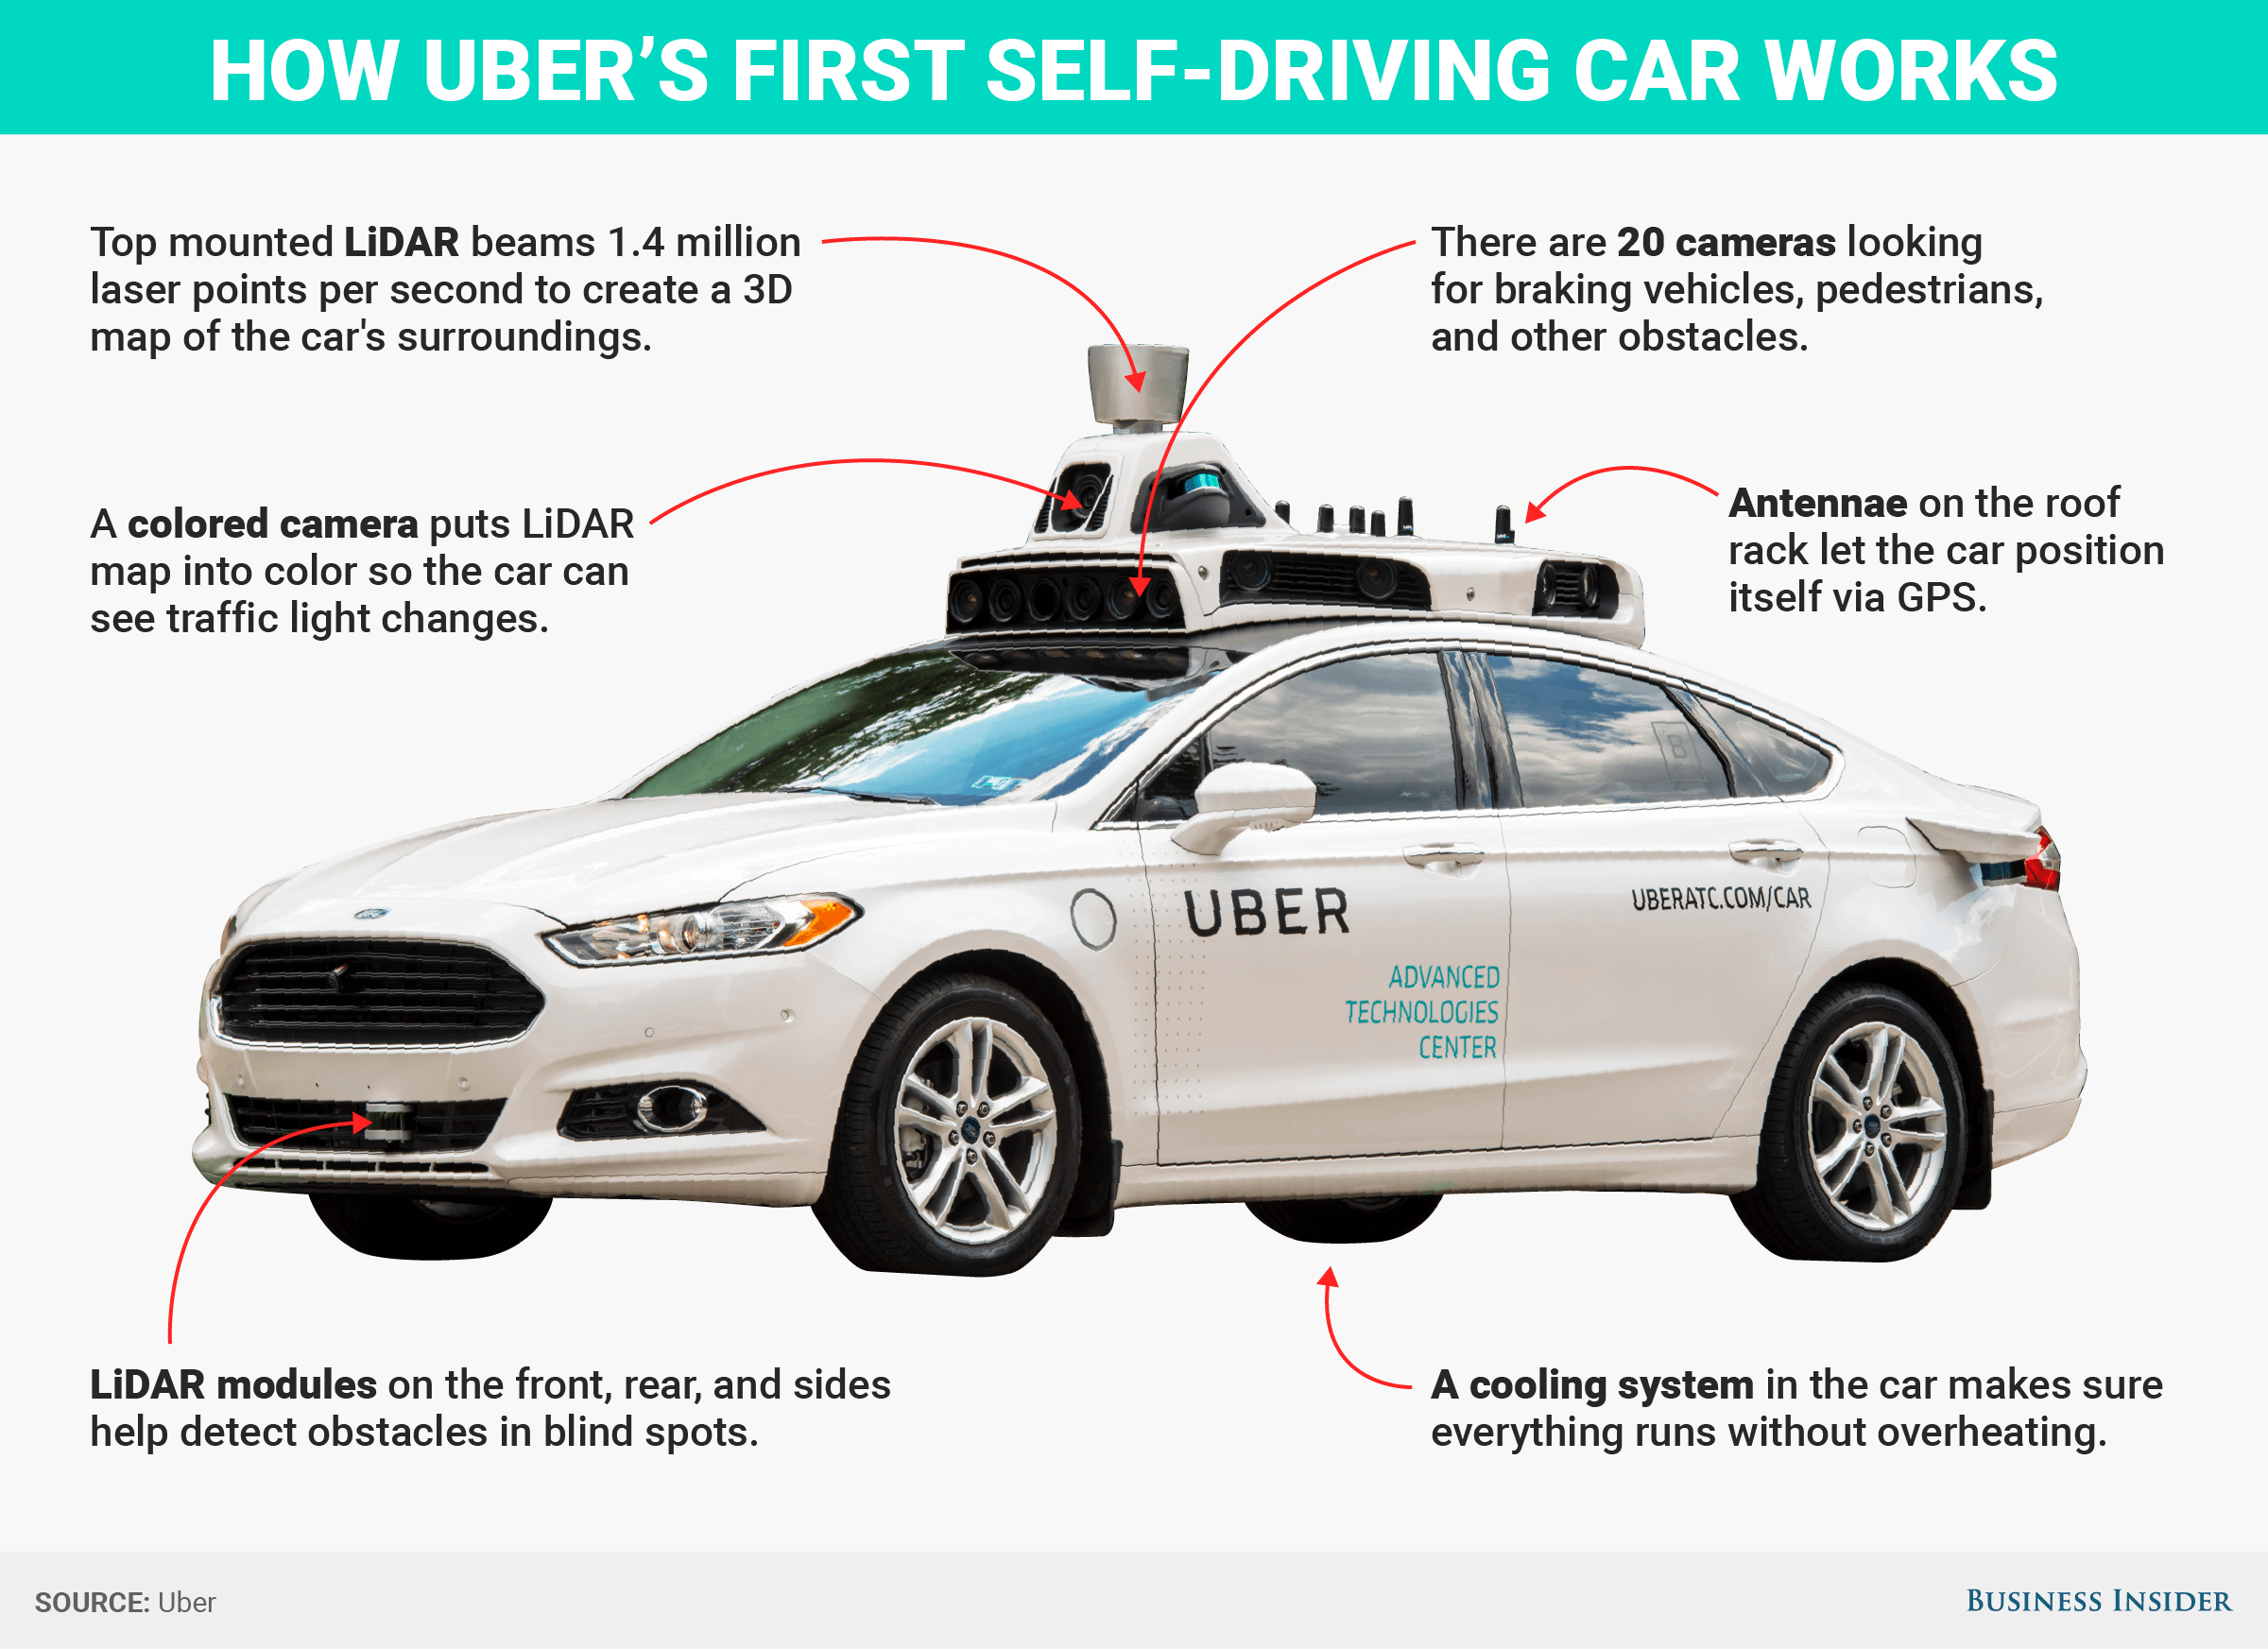 Future Trends – Self-driving UBER is here